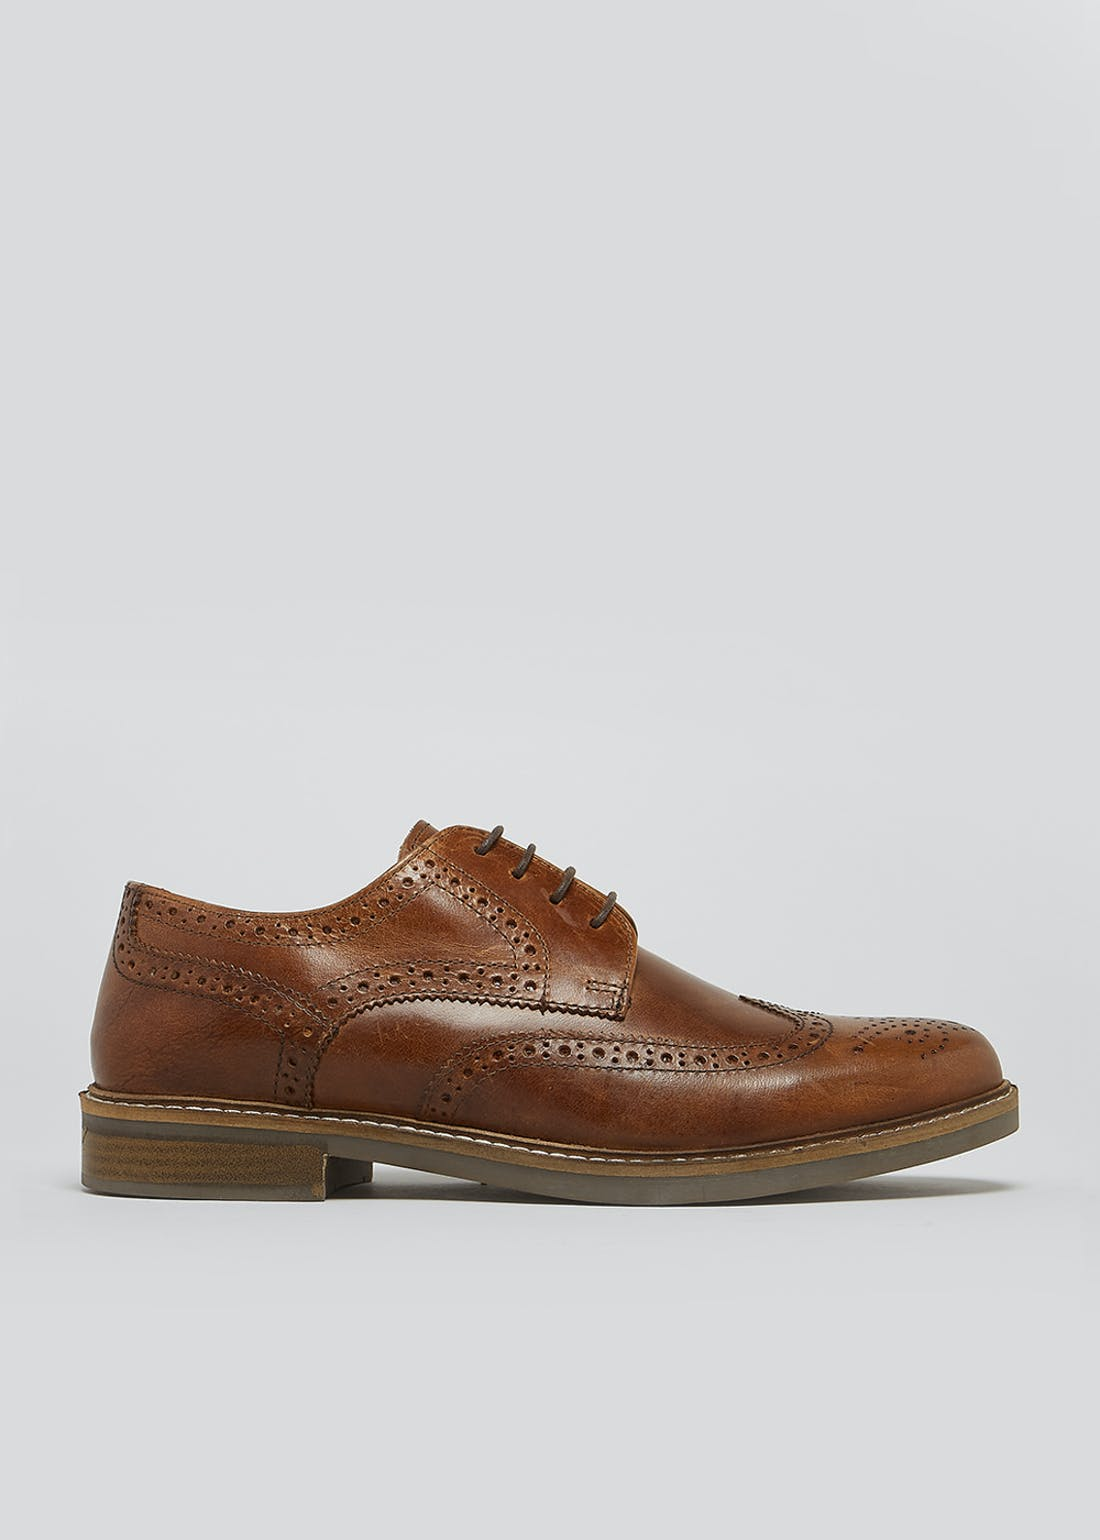 Real Leather Formal Brogues